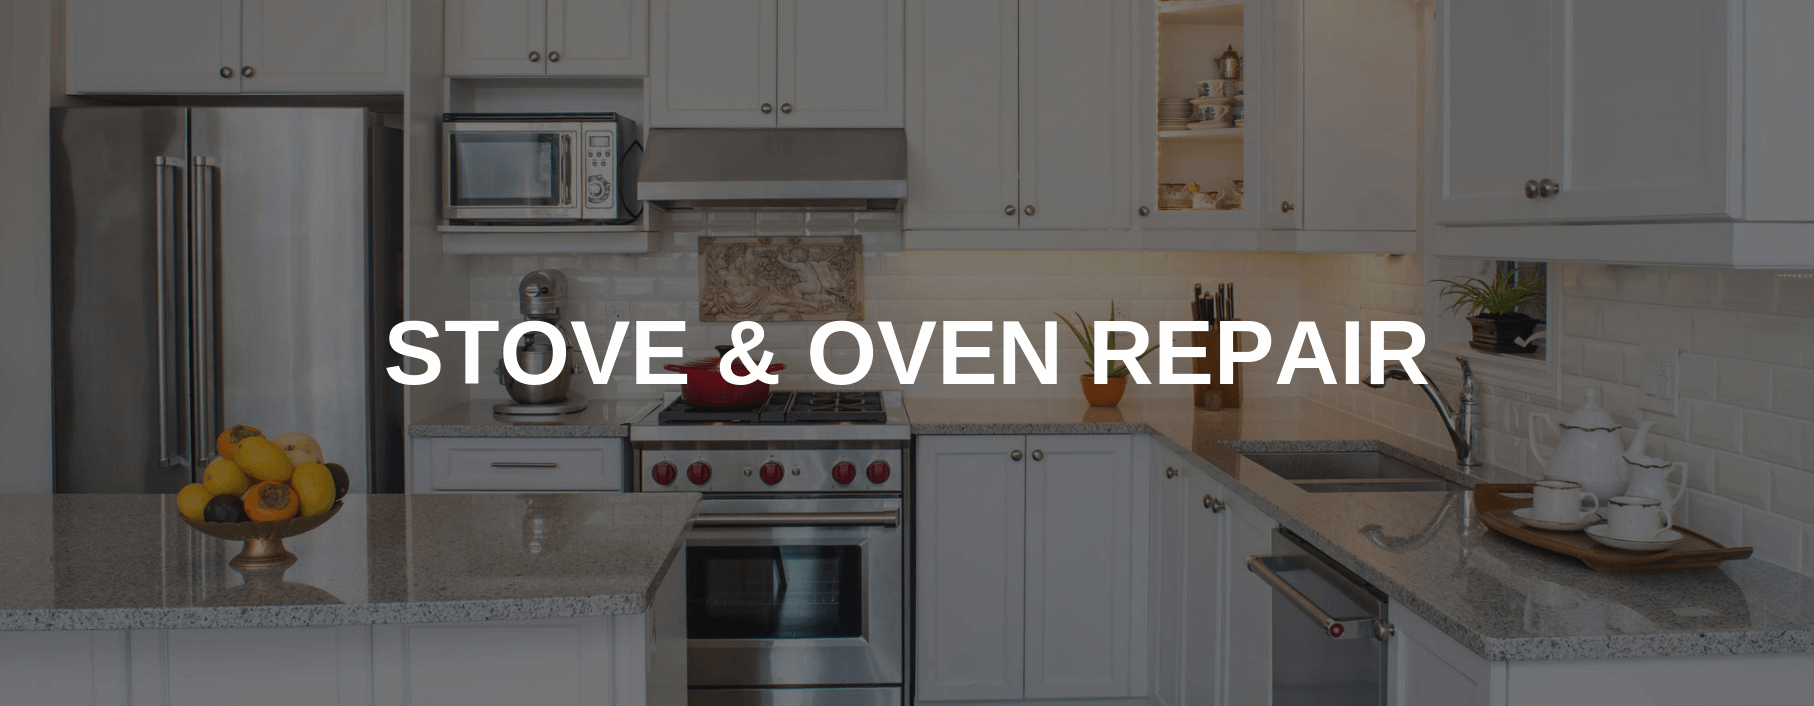 stove repair east orange